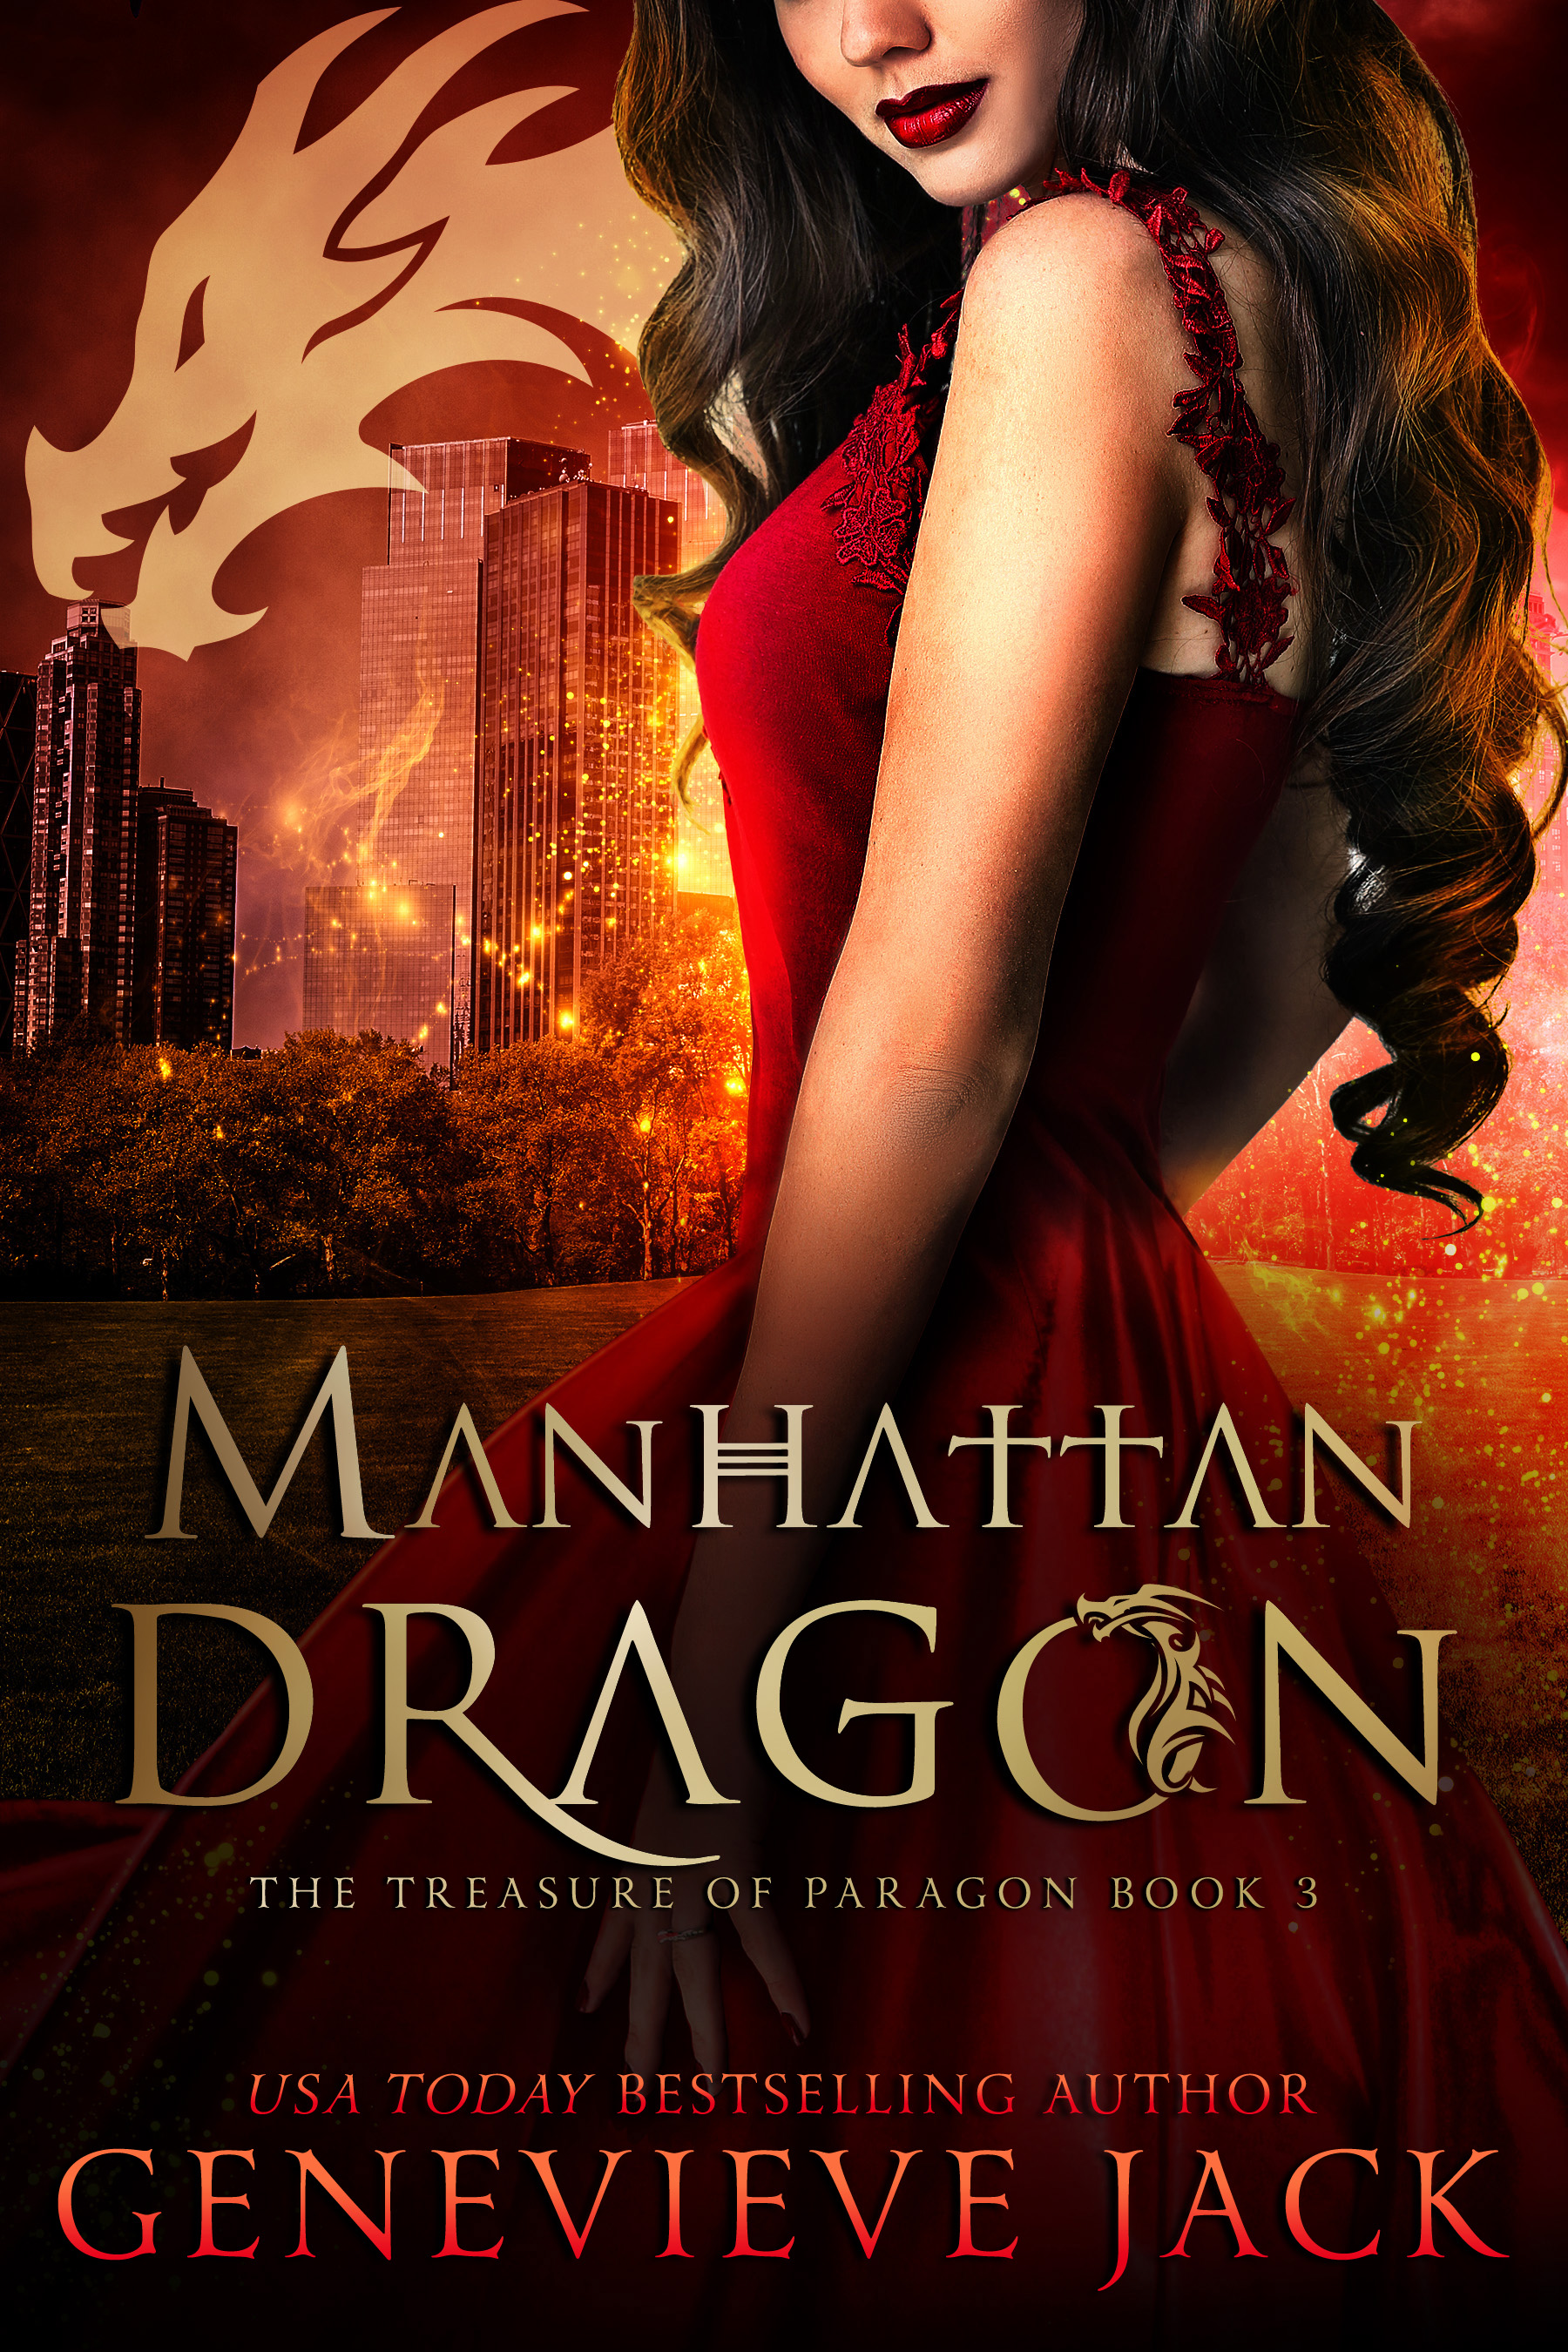 Manhattan Dragon